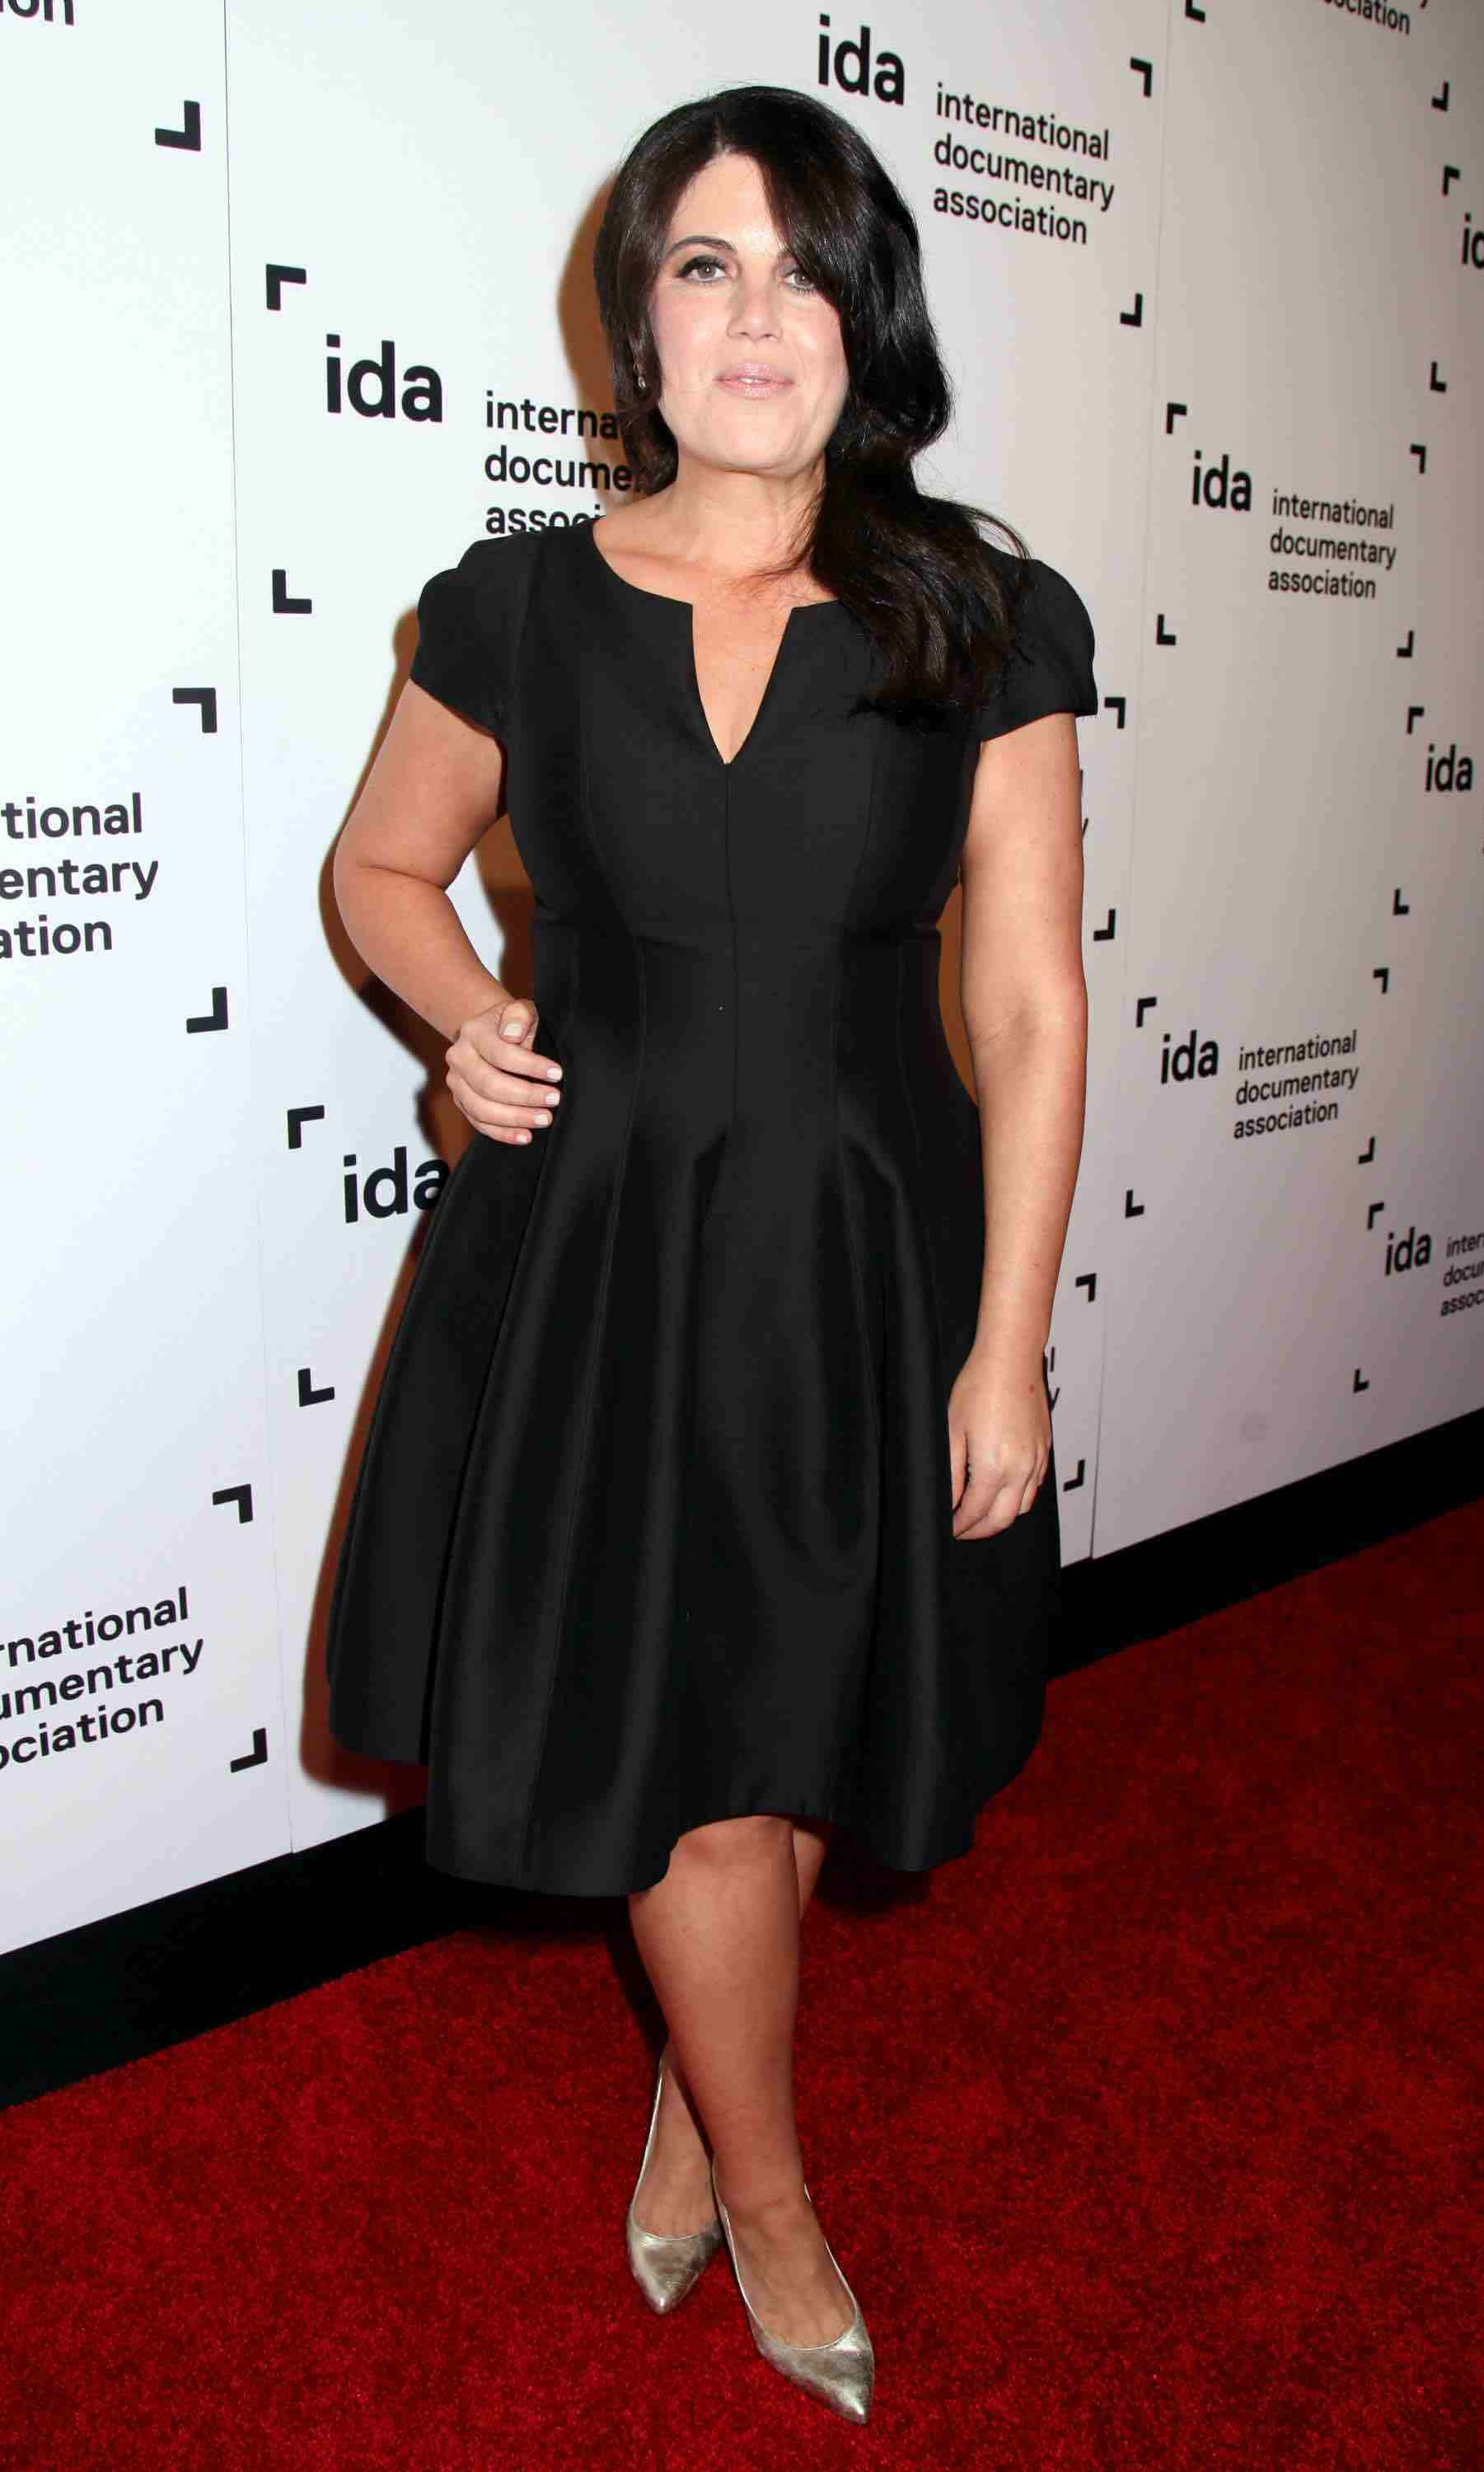 Monica Lewinsky Shows Off Her Glam New Look At The 2015